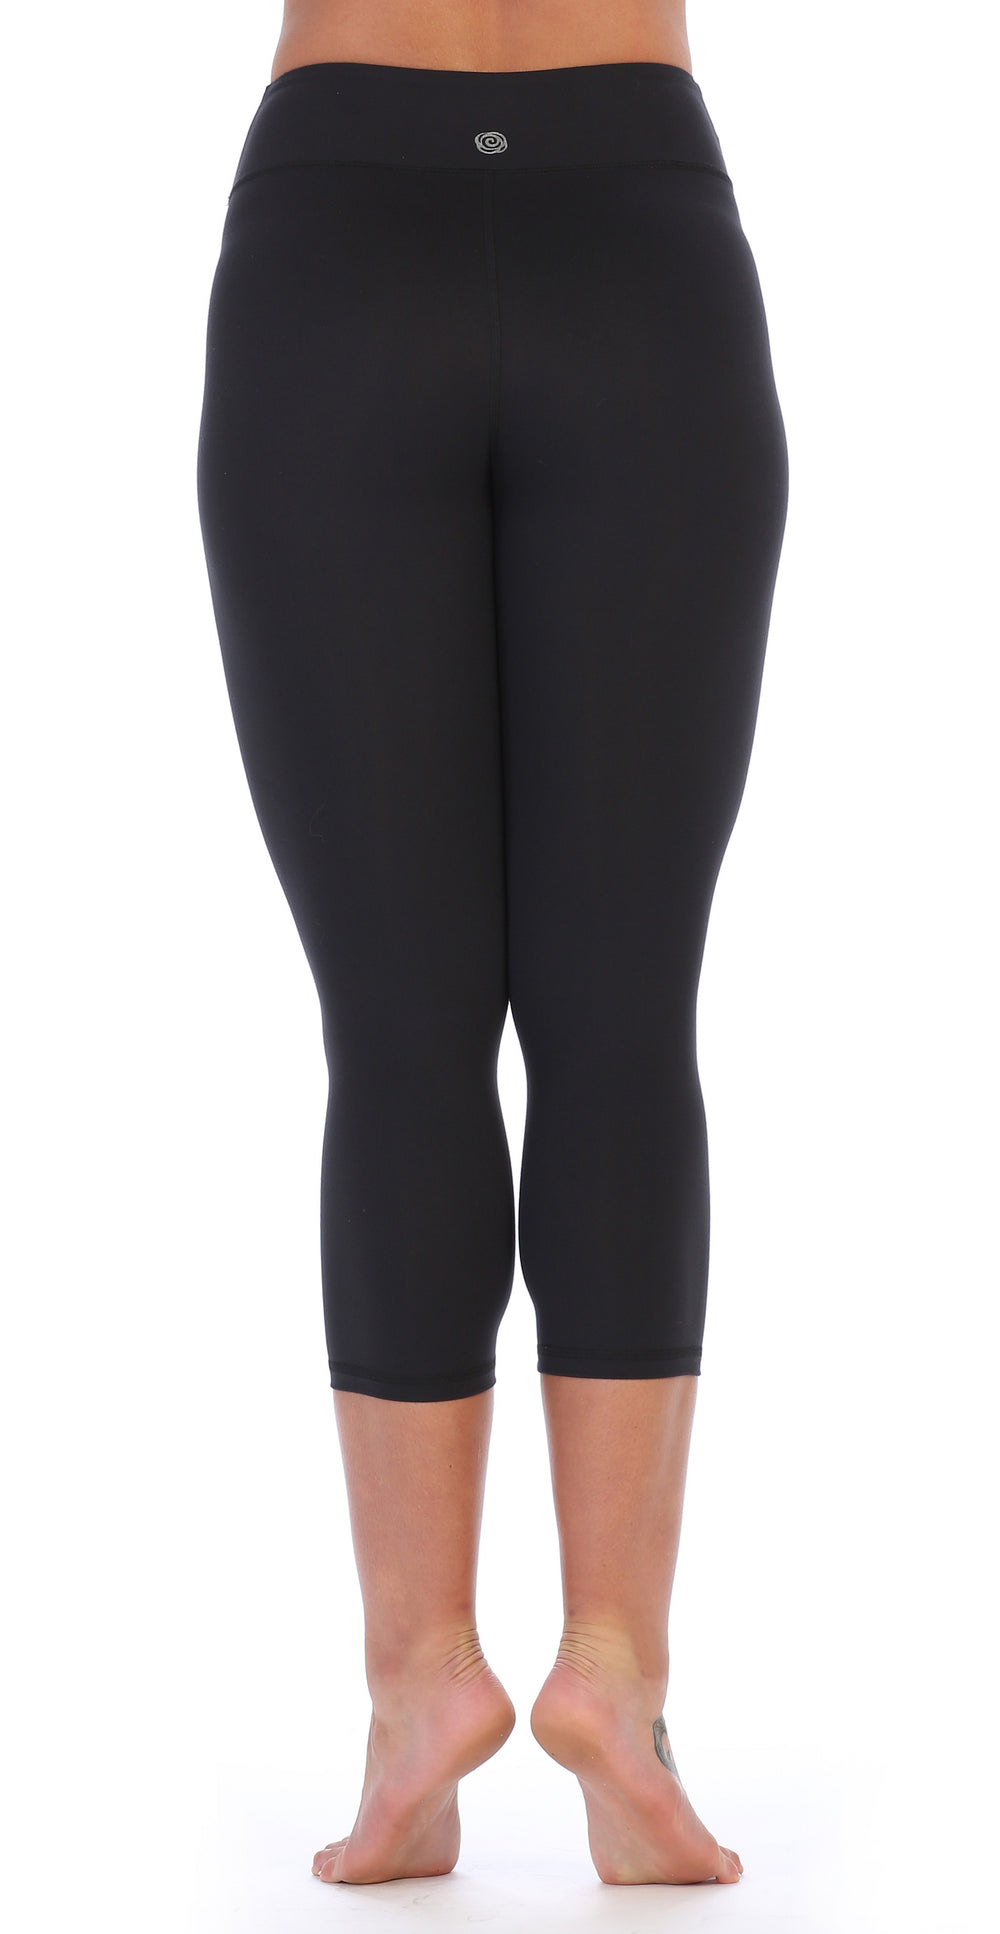 Black-Compression 3/4 Length Workout Leggings-back image